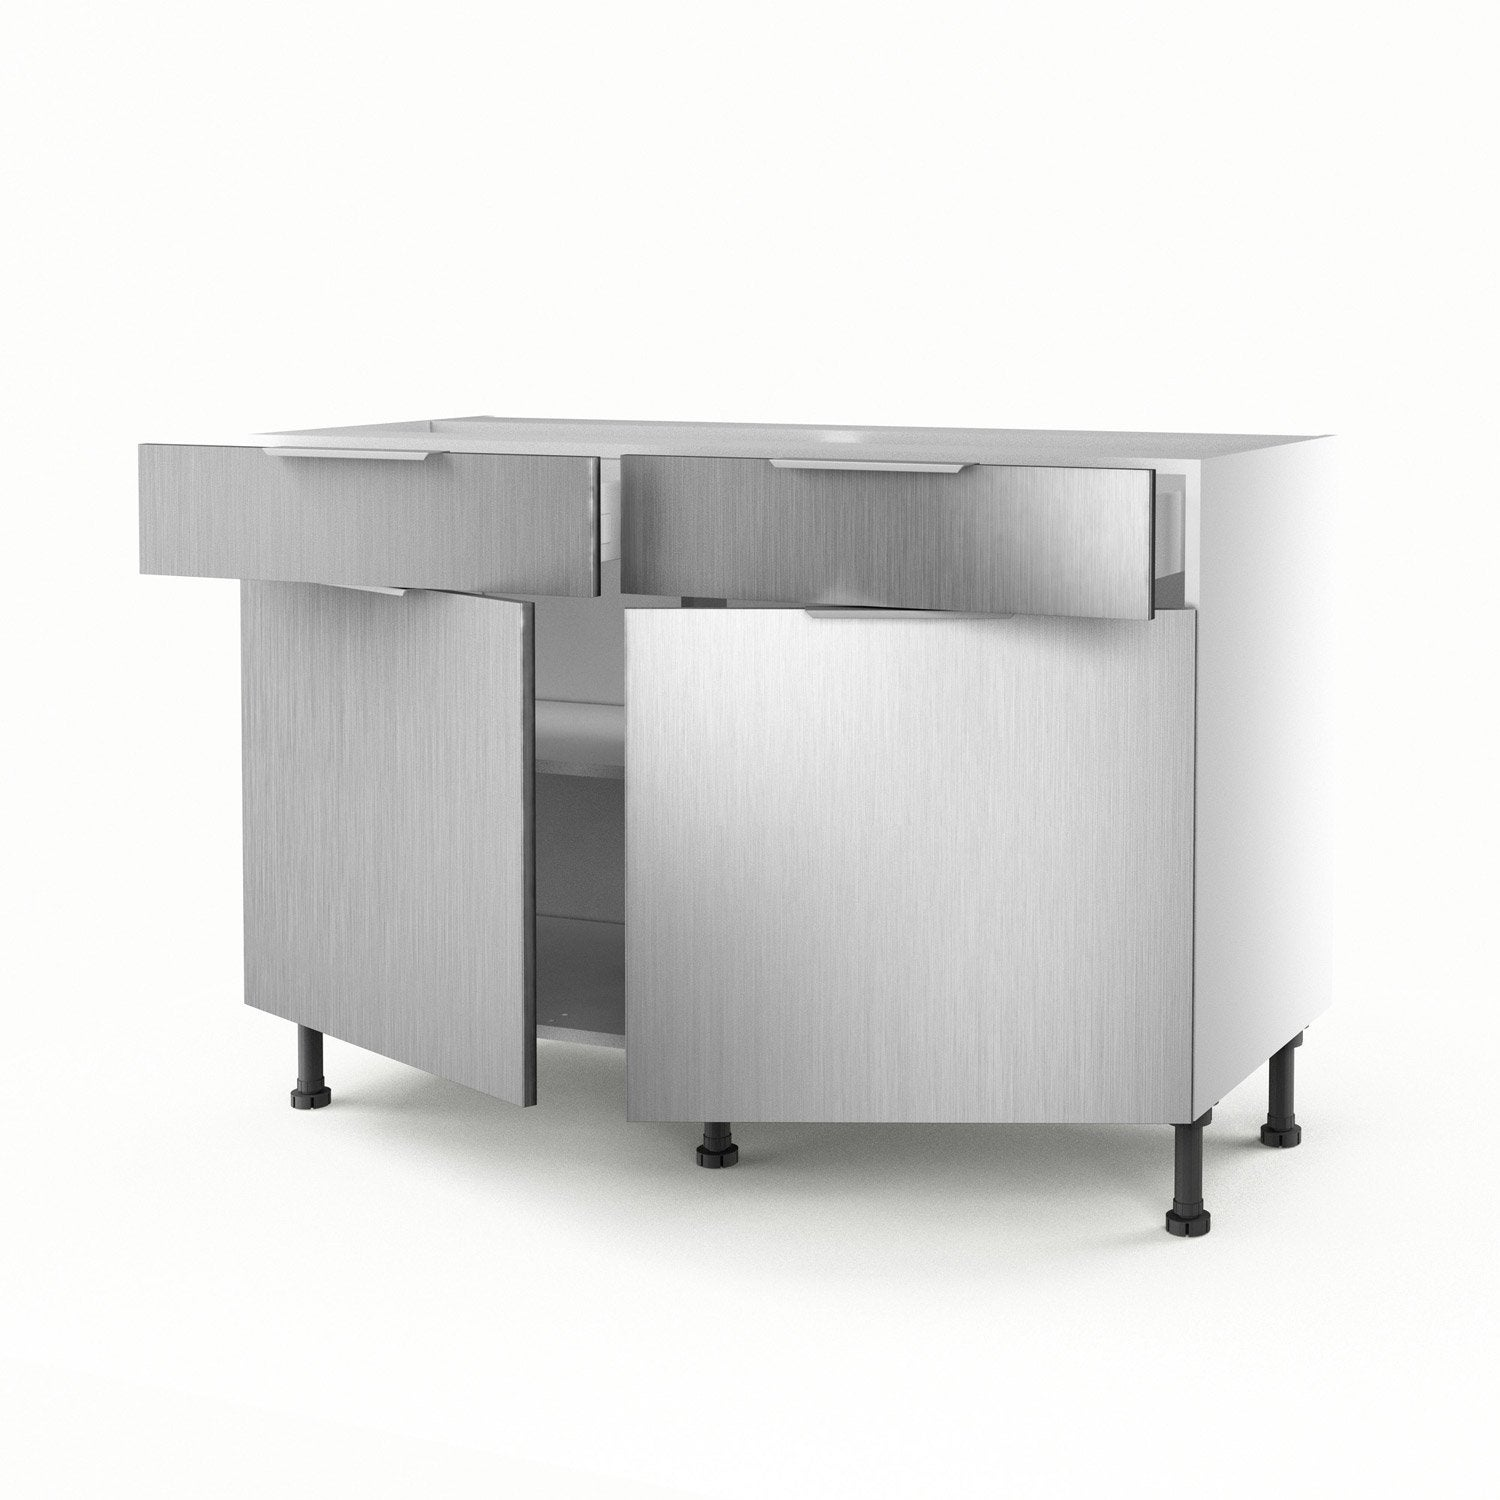 Element de cuisine ikea element de cuisine bas 9 table for Ikea element cuisine haut